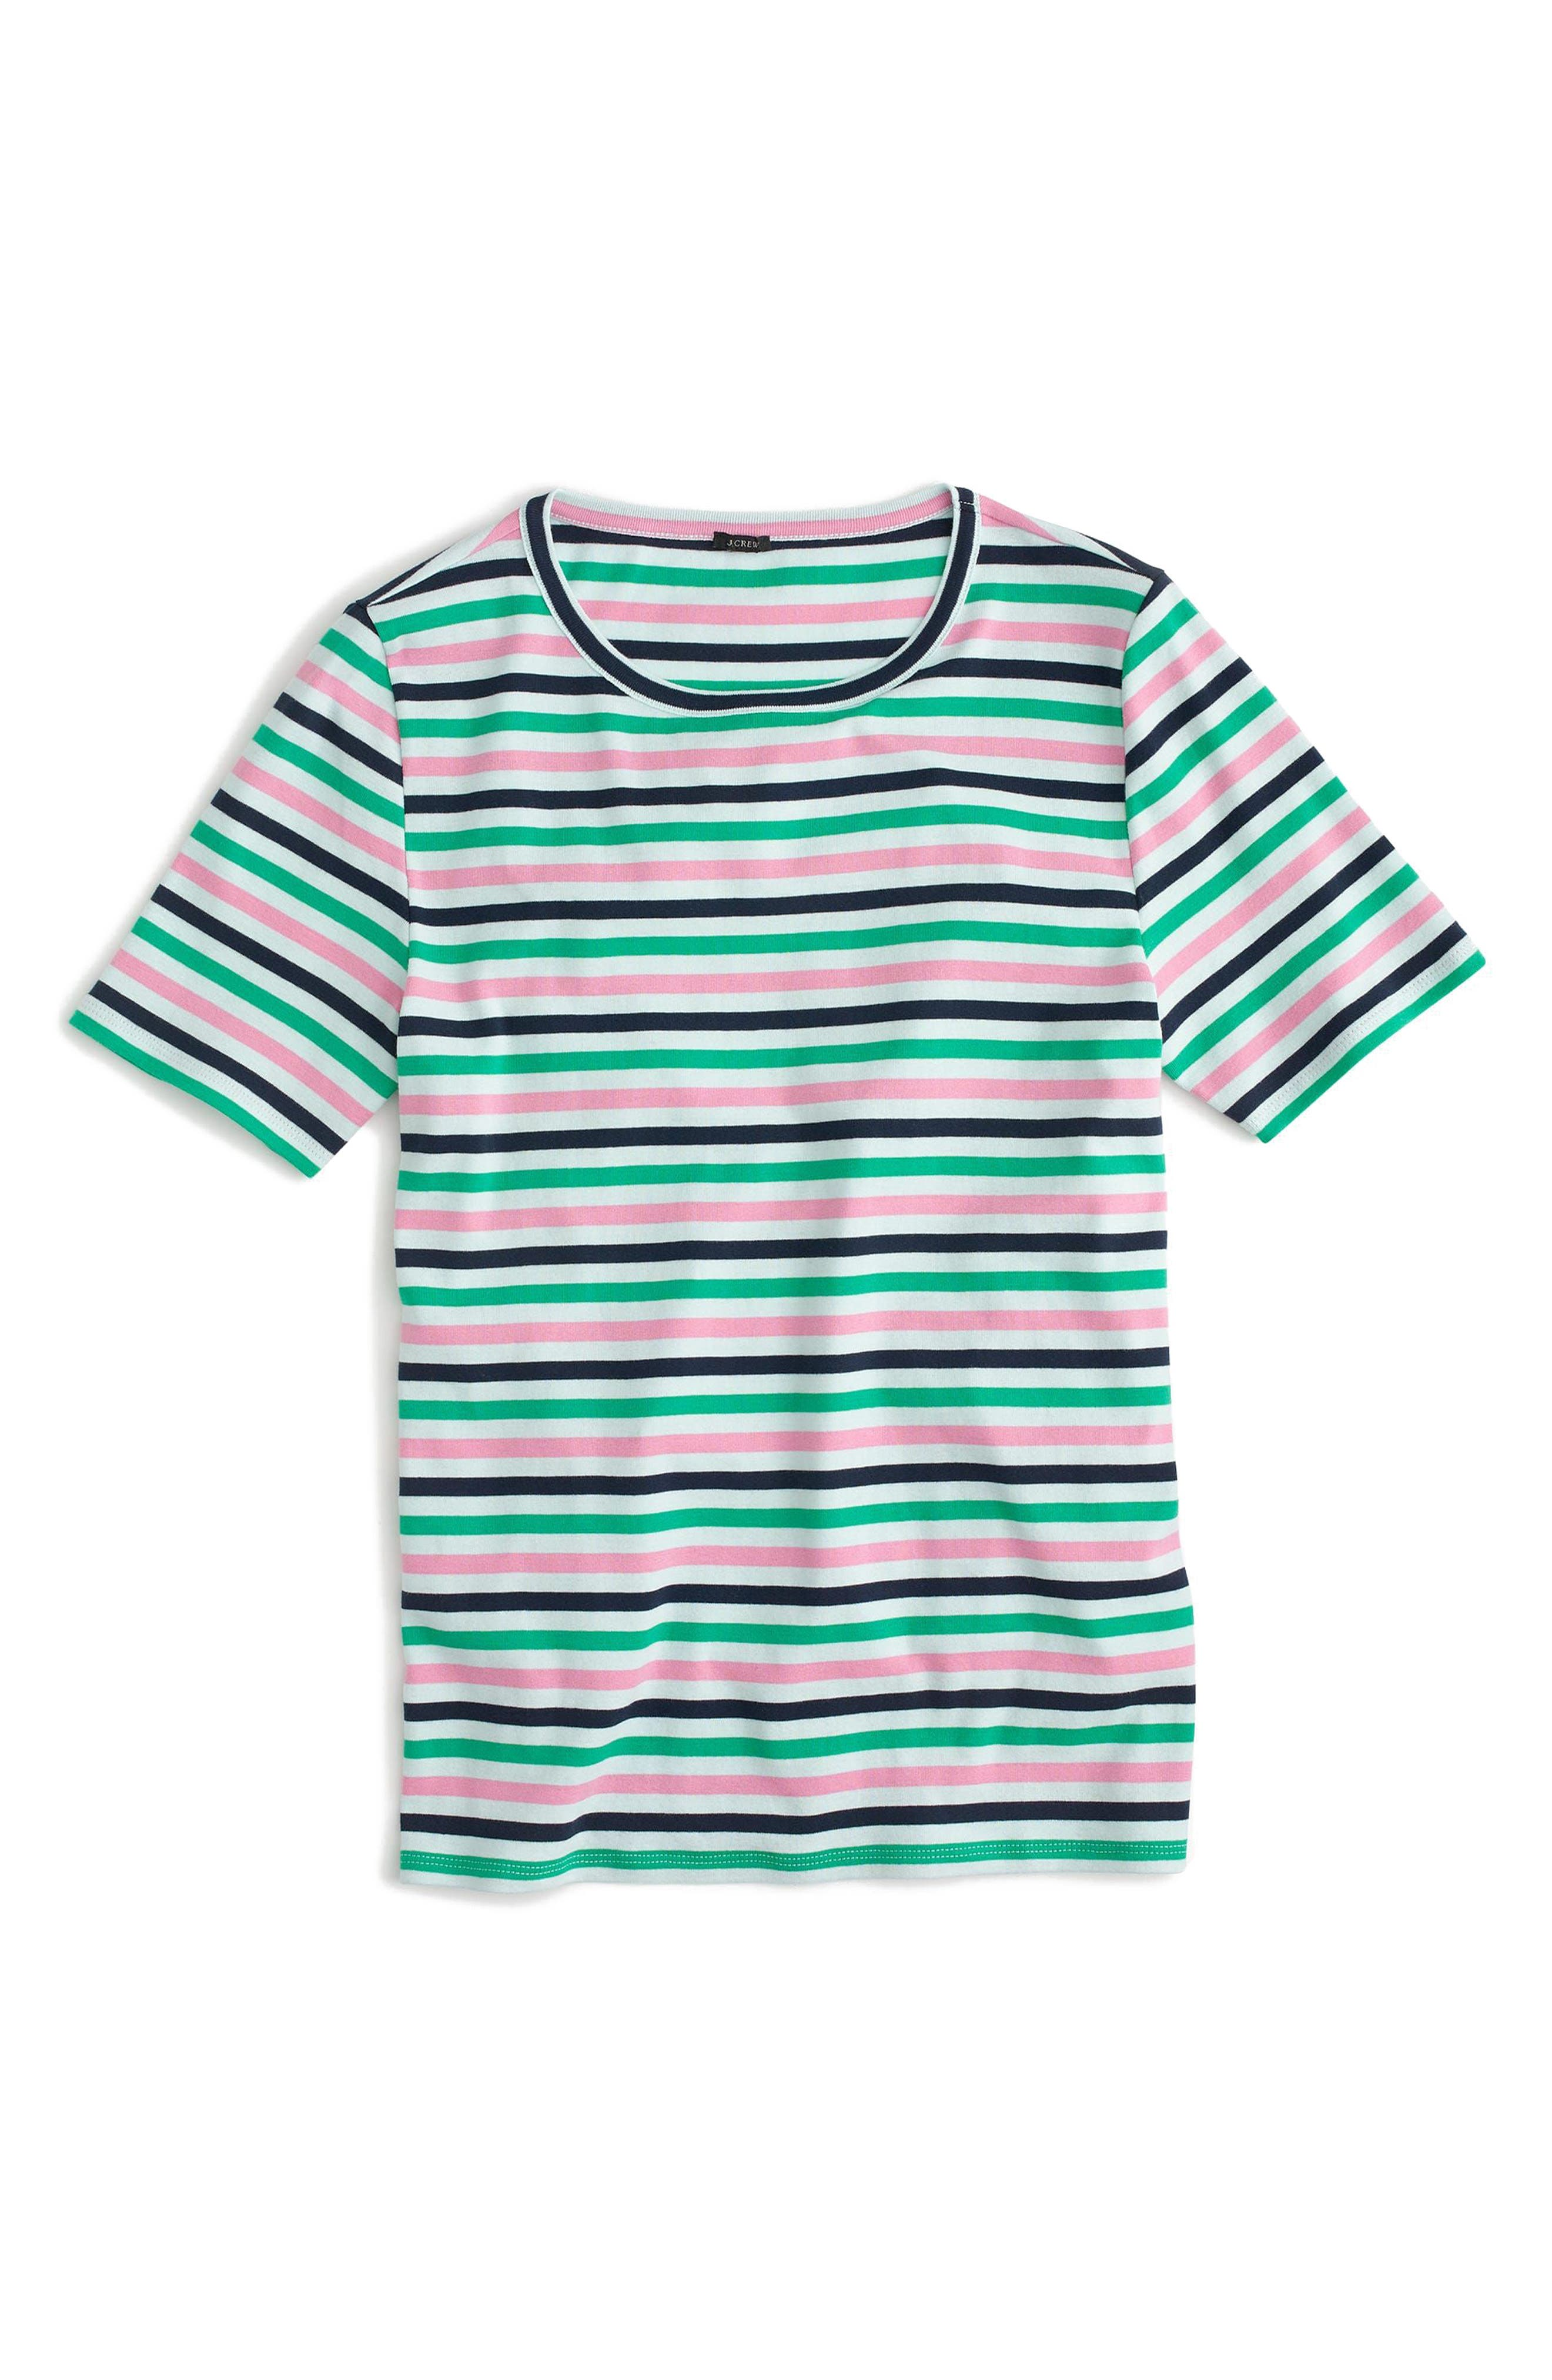 J.Crew New Perfect Fit T-Shirt